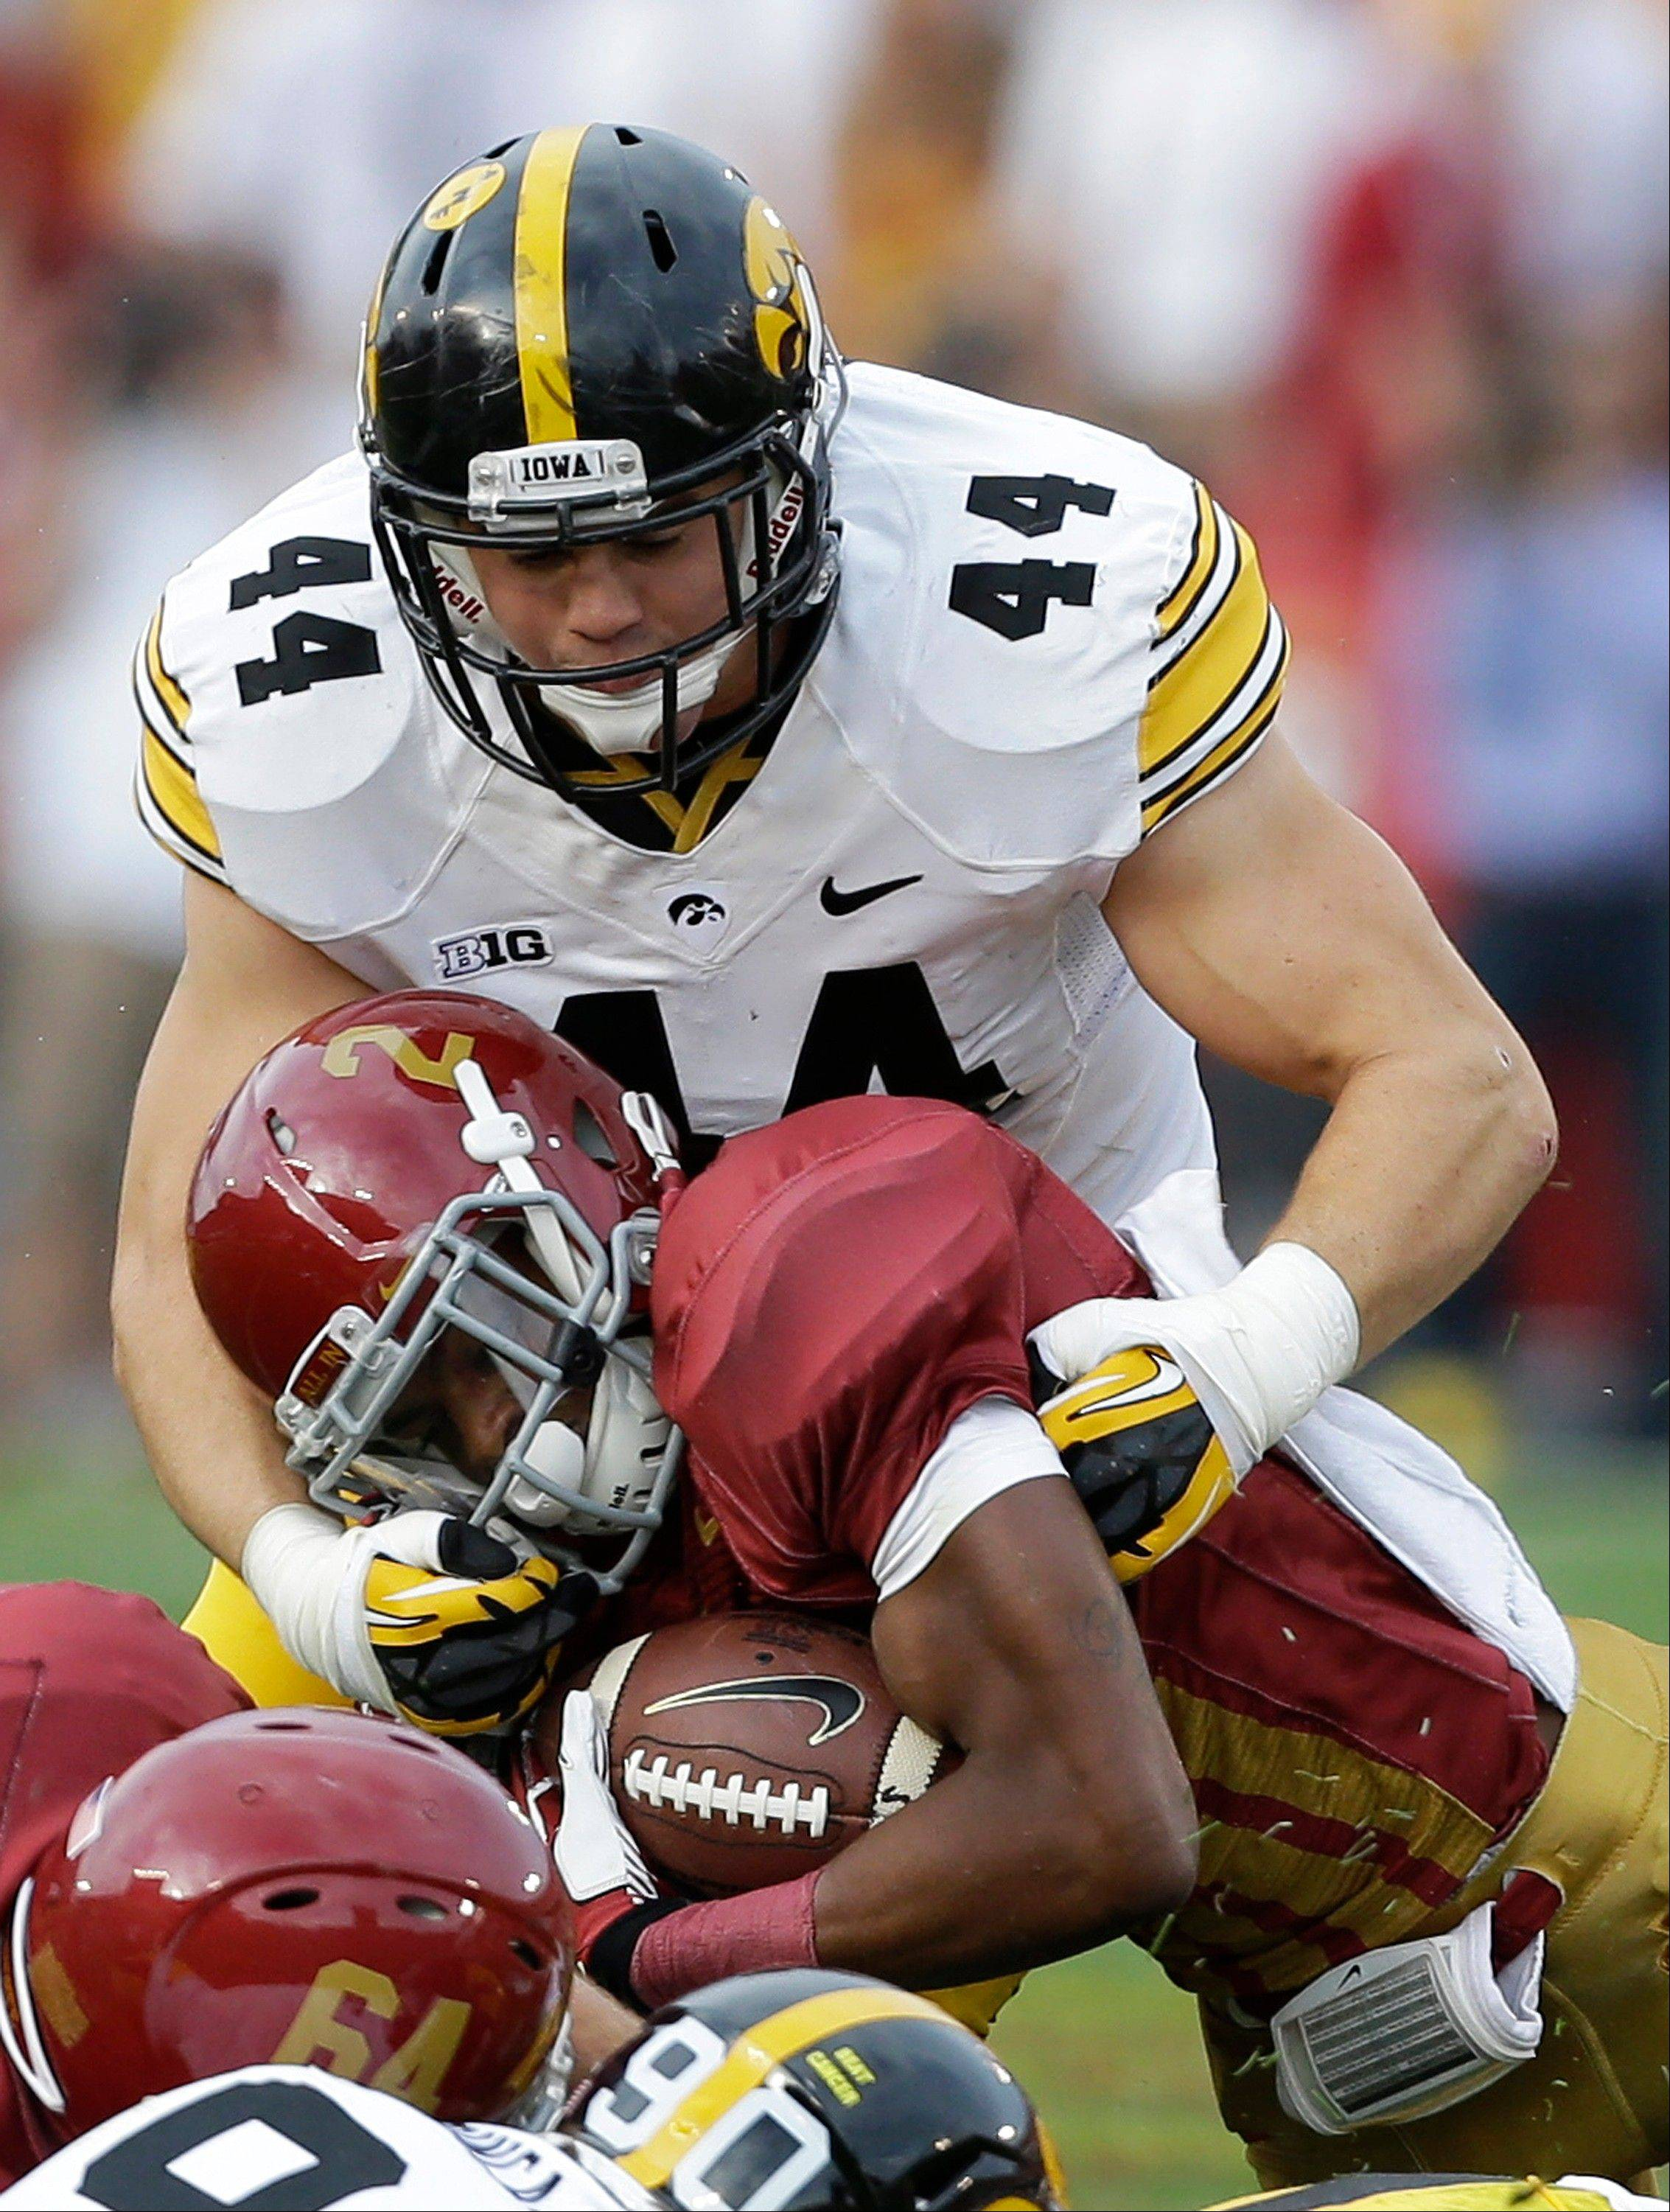 Iowa linebacker James Morris tackles Iowa State running back Aaron Wimberly during the first half of Iowa�s win Saturday in Ames.